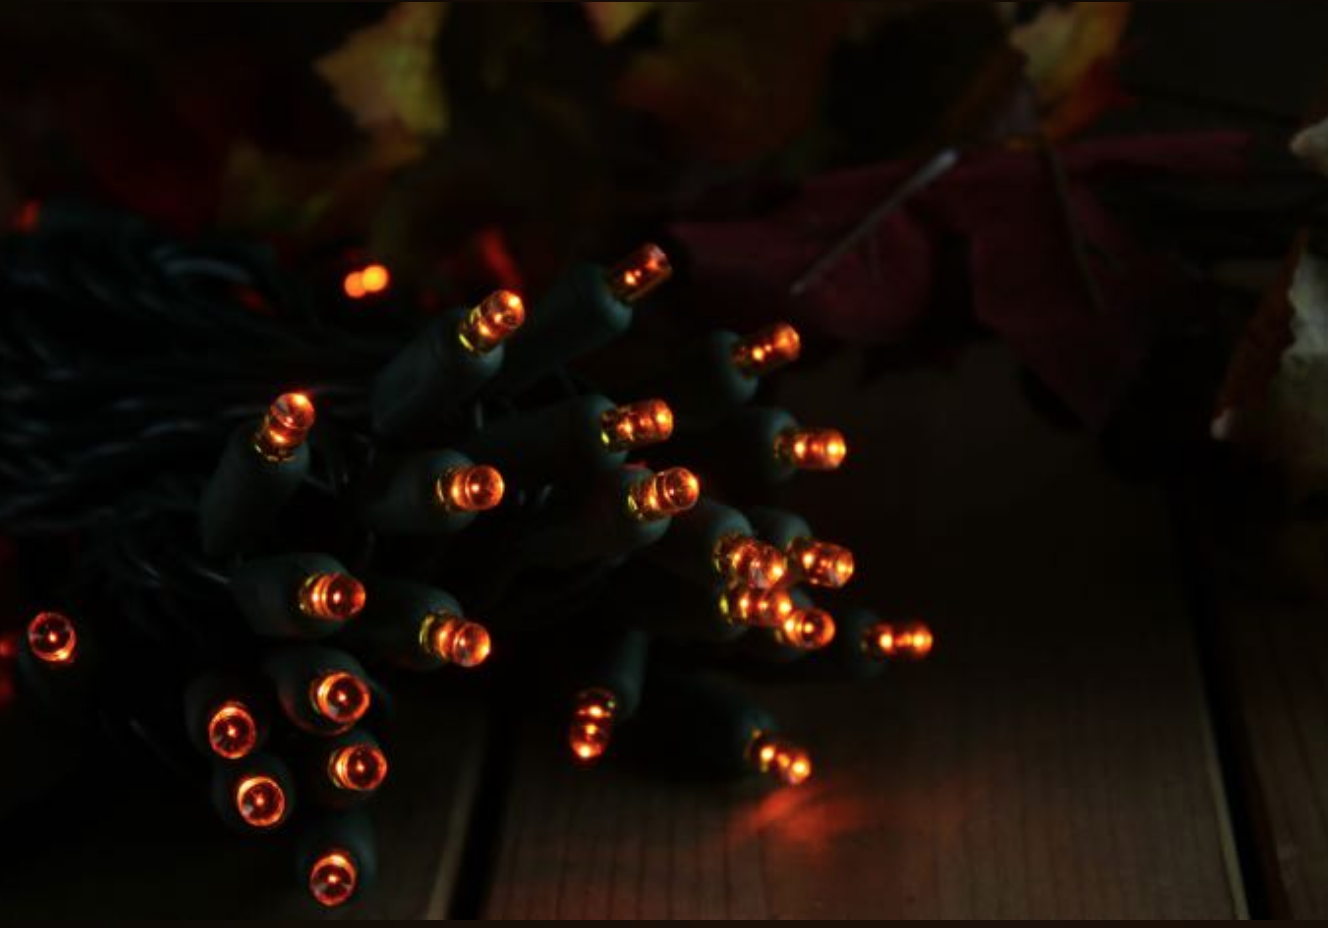 Using Orange LED Christmas Lights